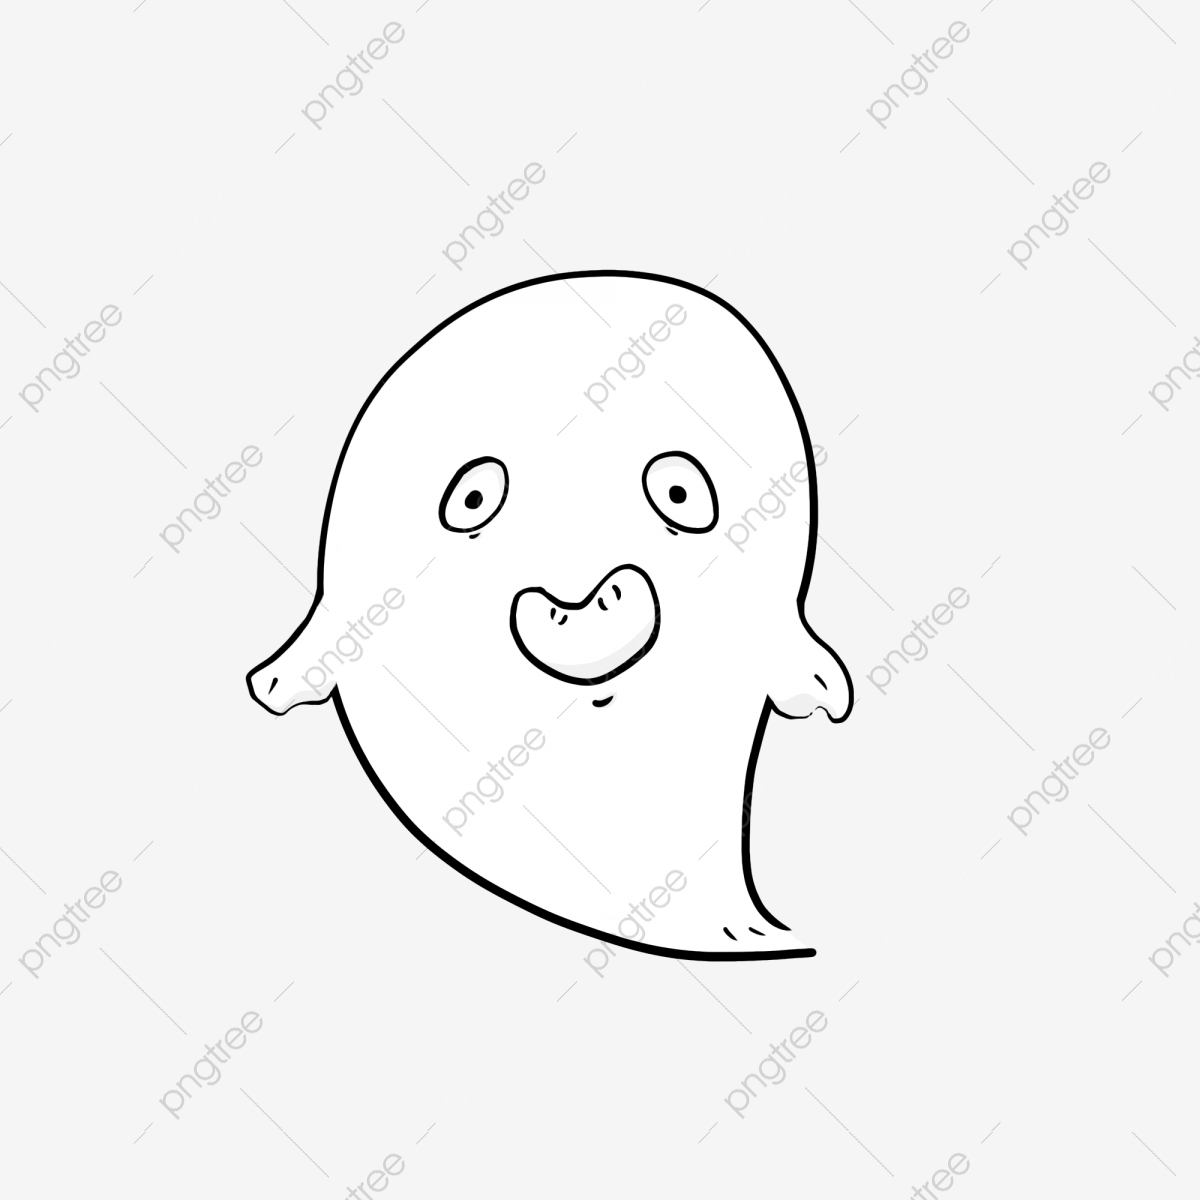 Halloween Cartoon Spooky Decorative Elements Halloween Ghost